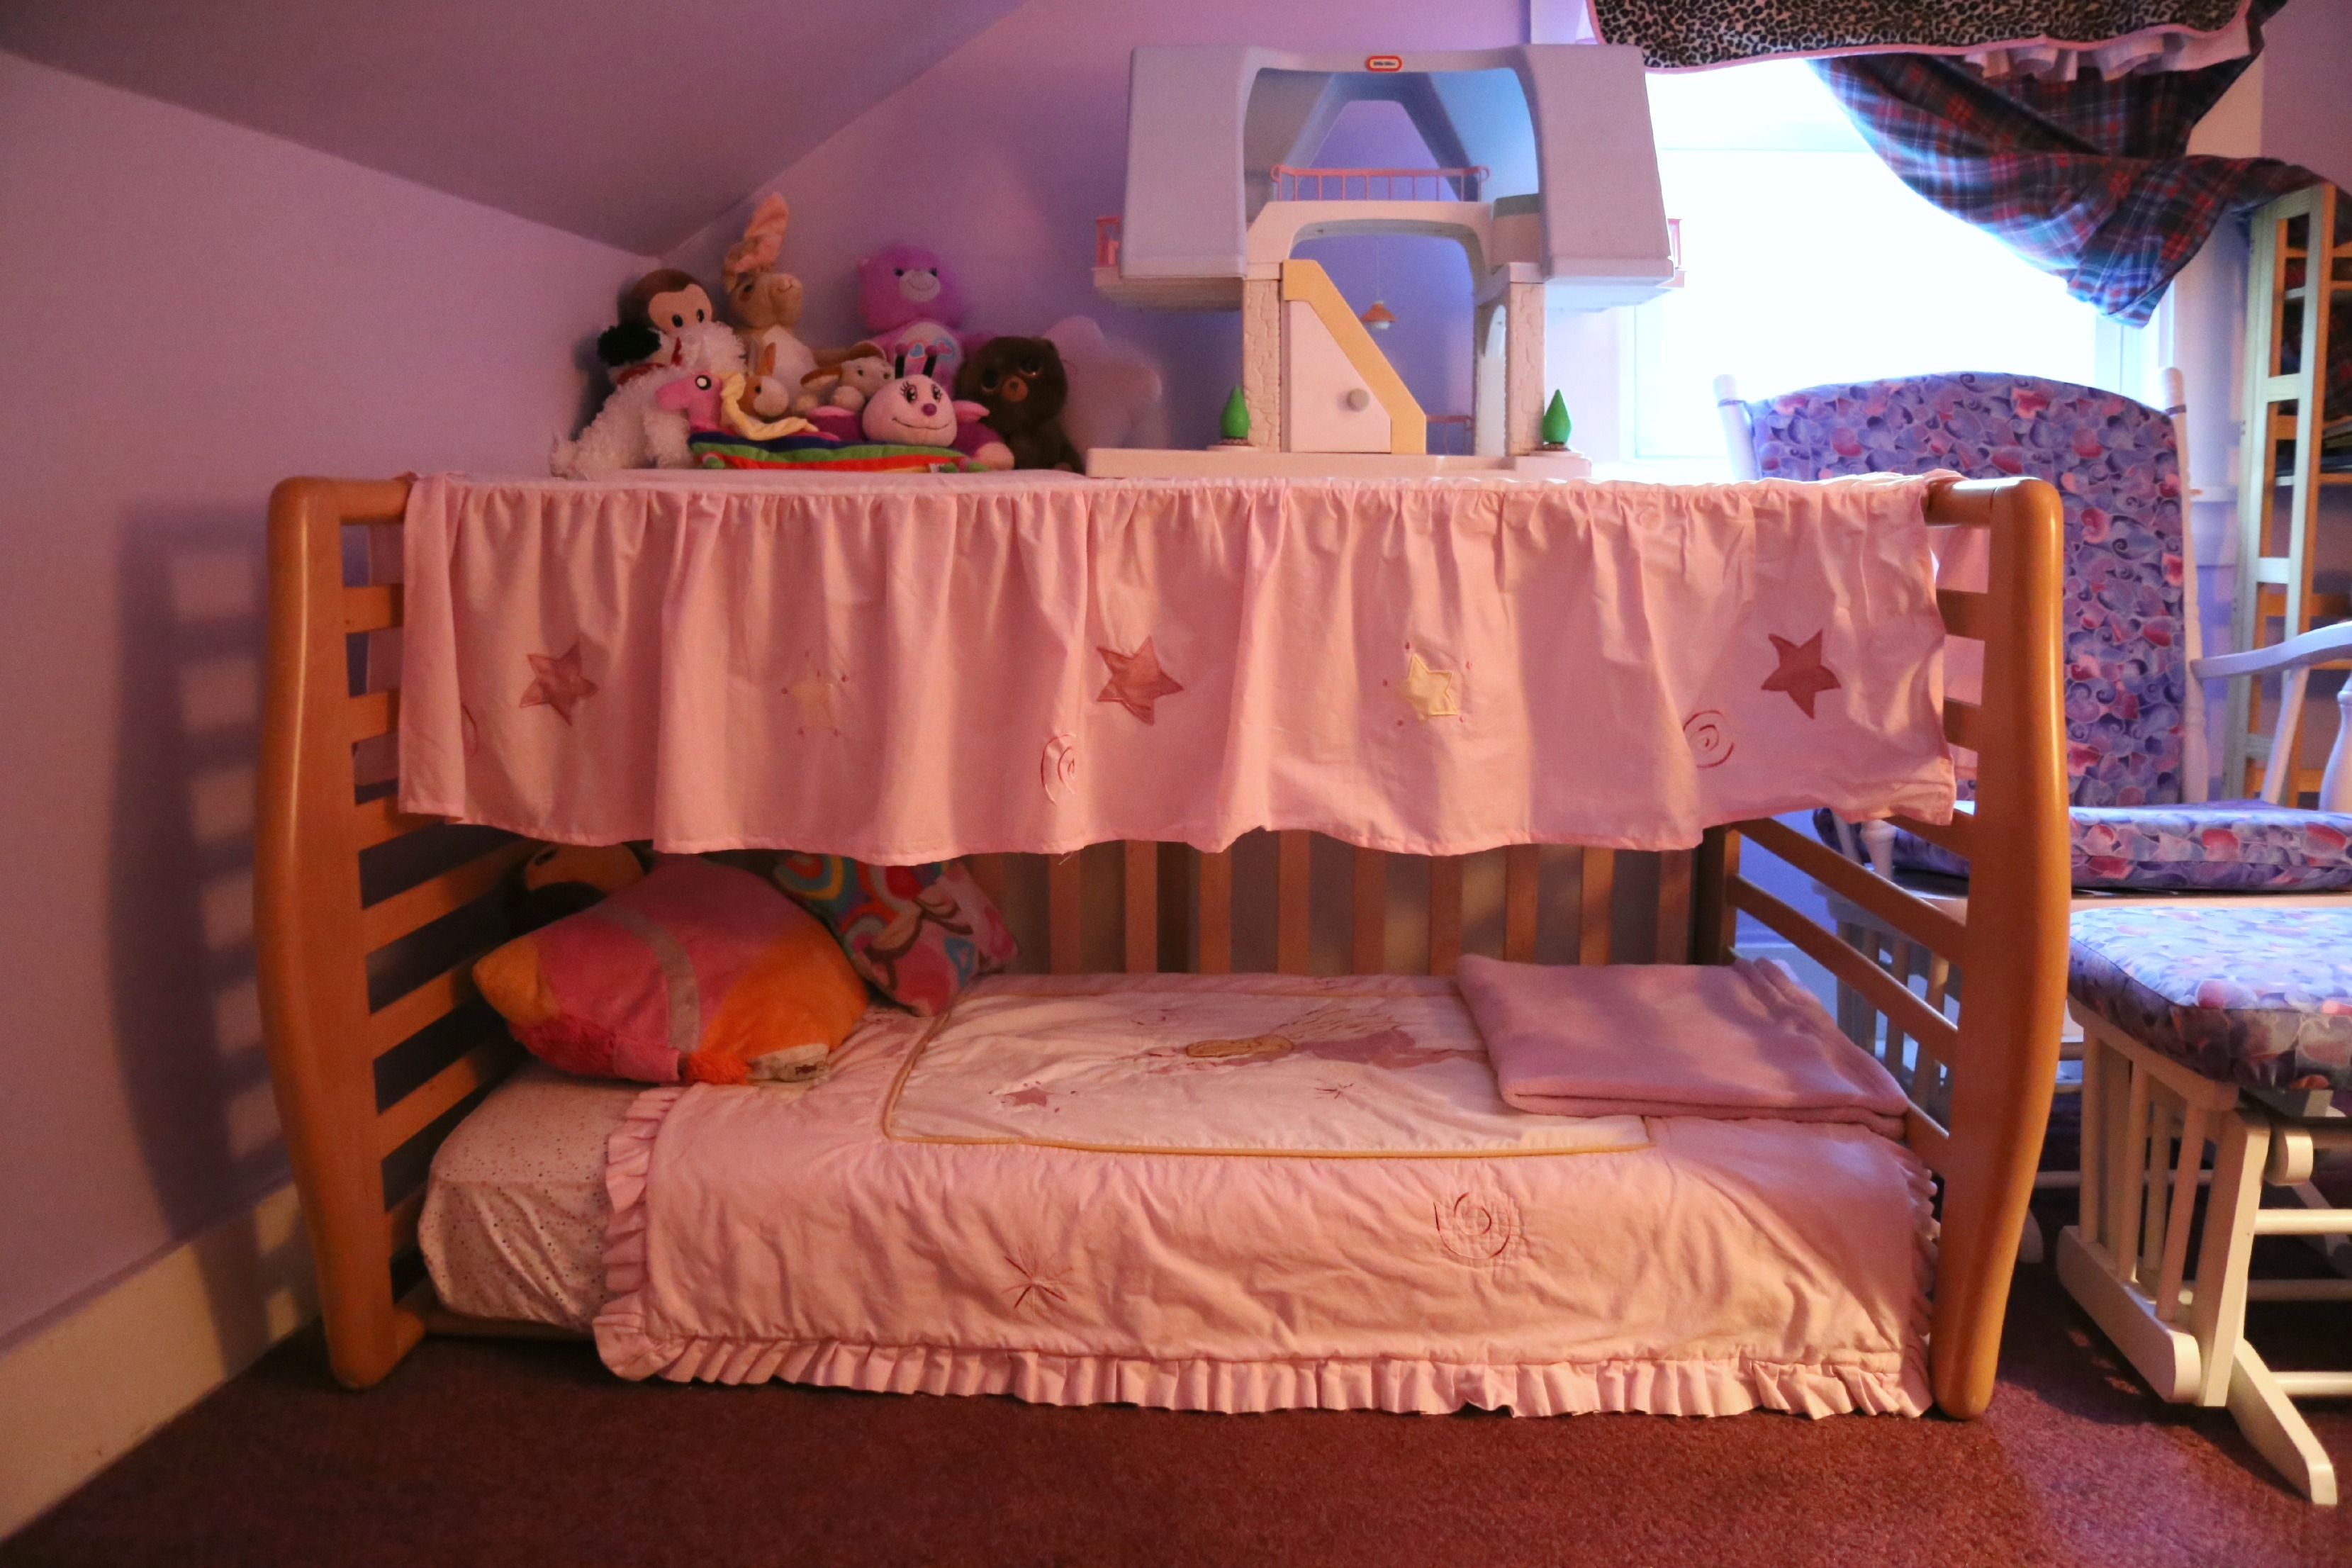 Repurposed Crib Into A Canopy Toddler Bed With Storage On